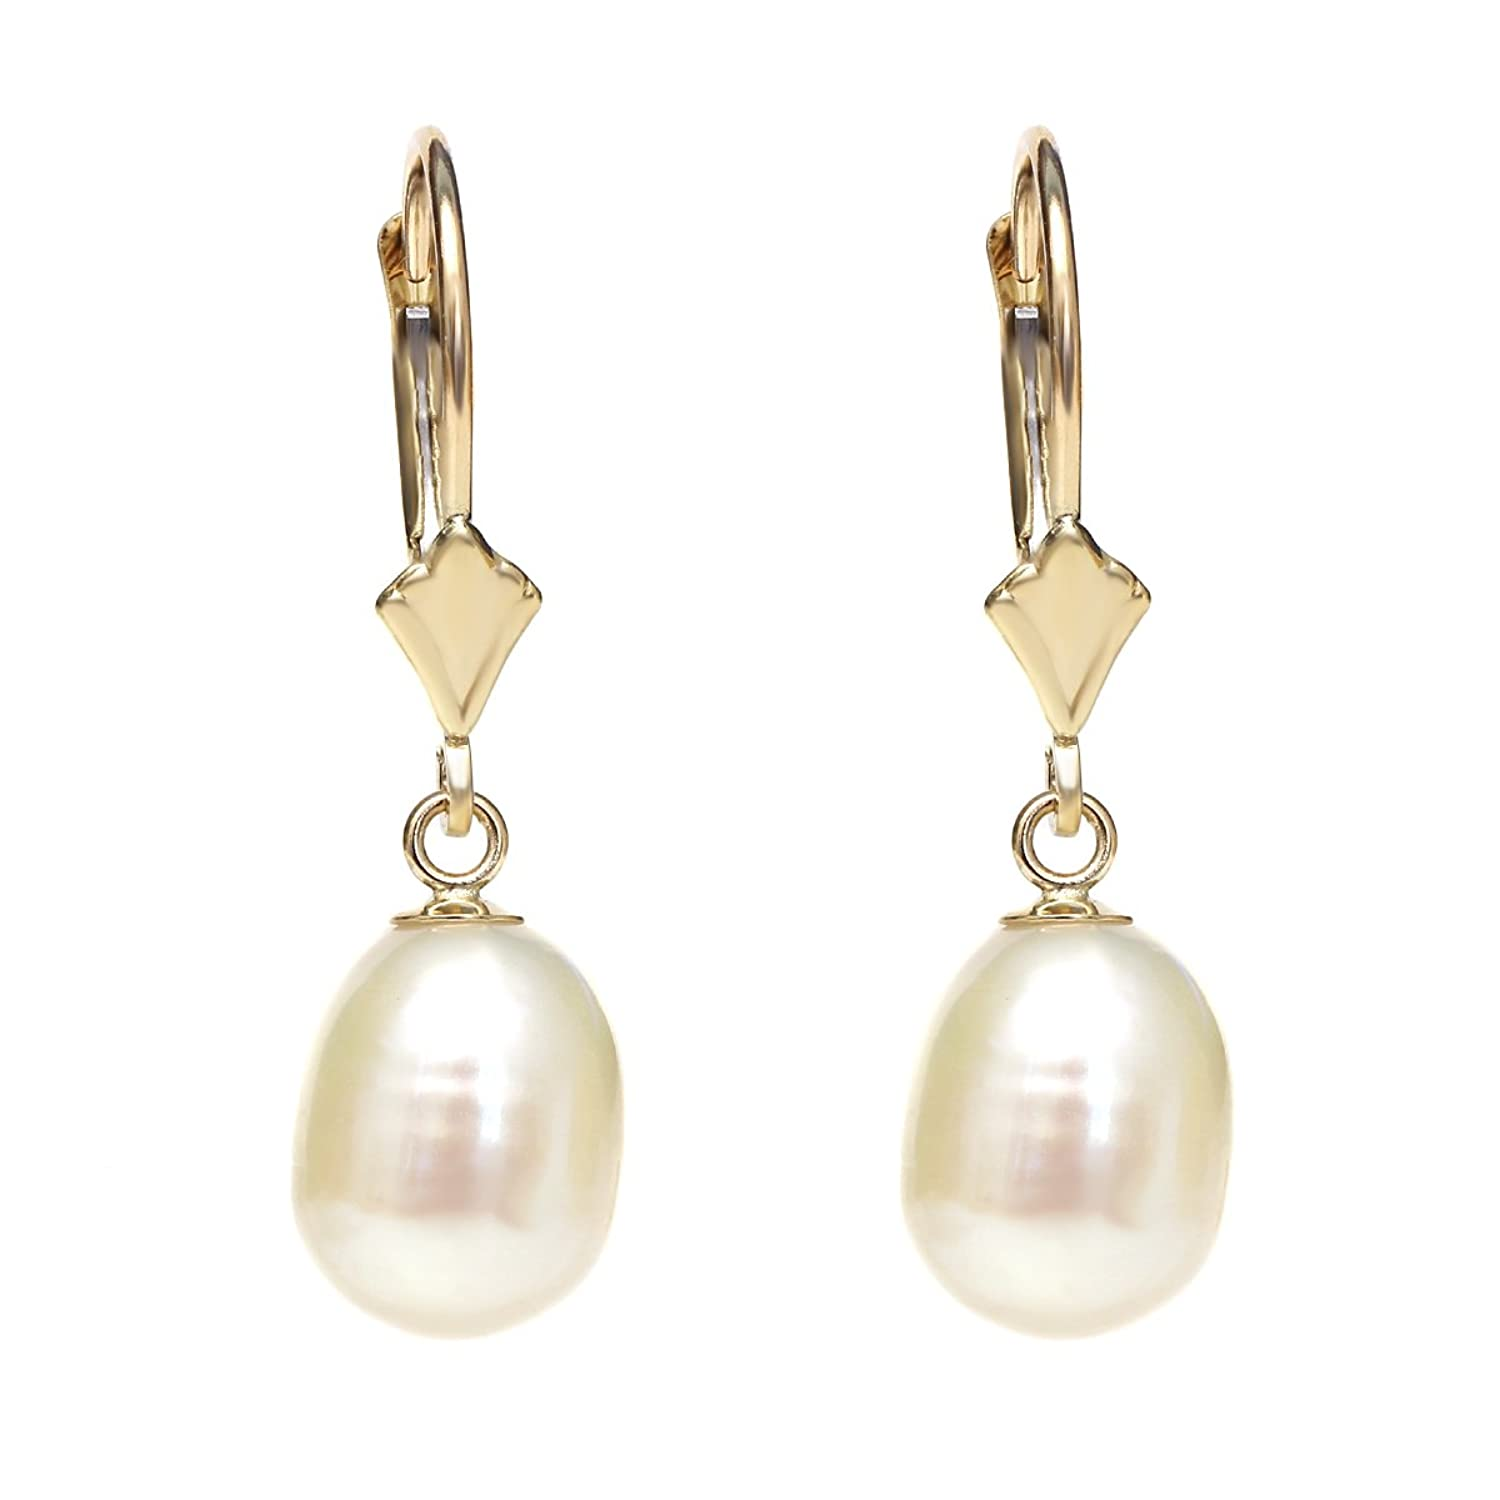 14K Yellow Gold Exceptional 8mm x 9mm Oval Cultured Freshwater Pearl Earrings